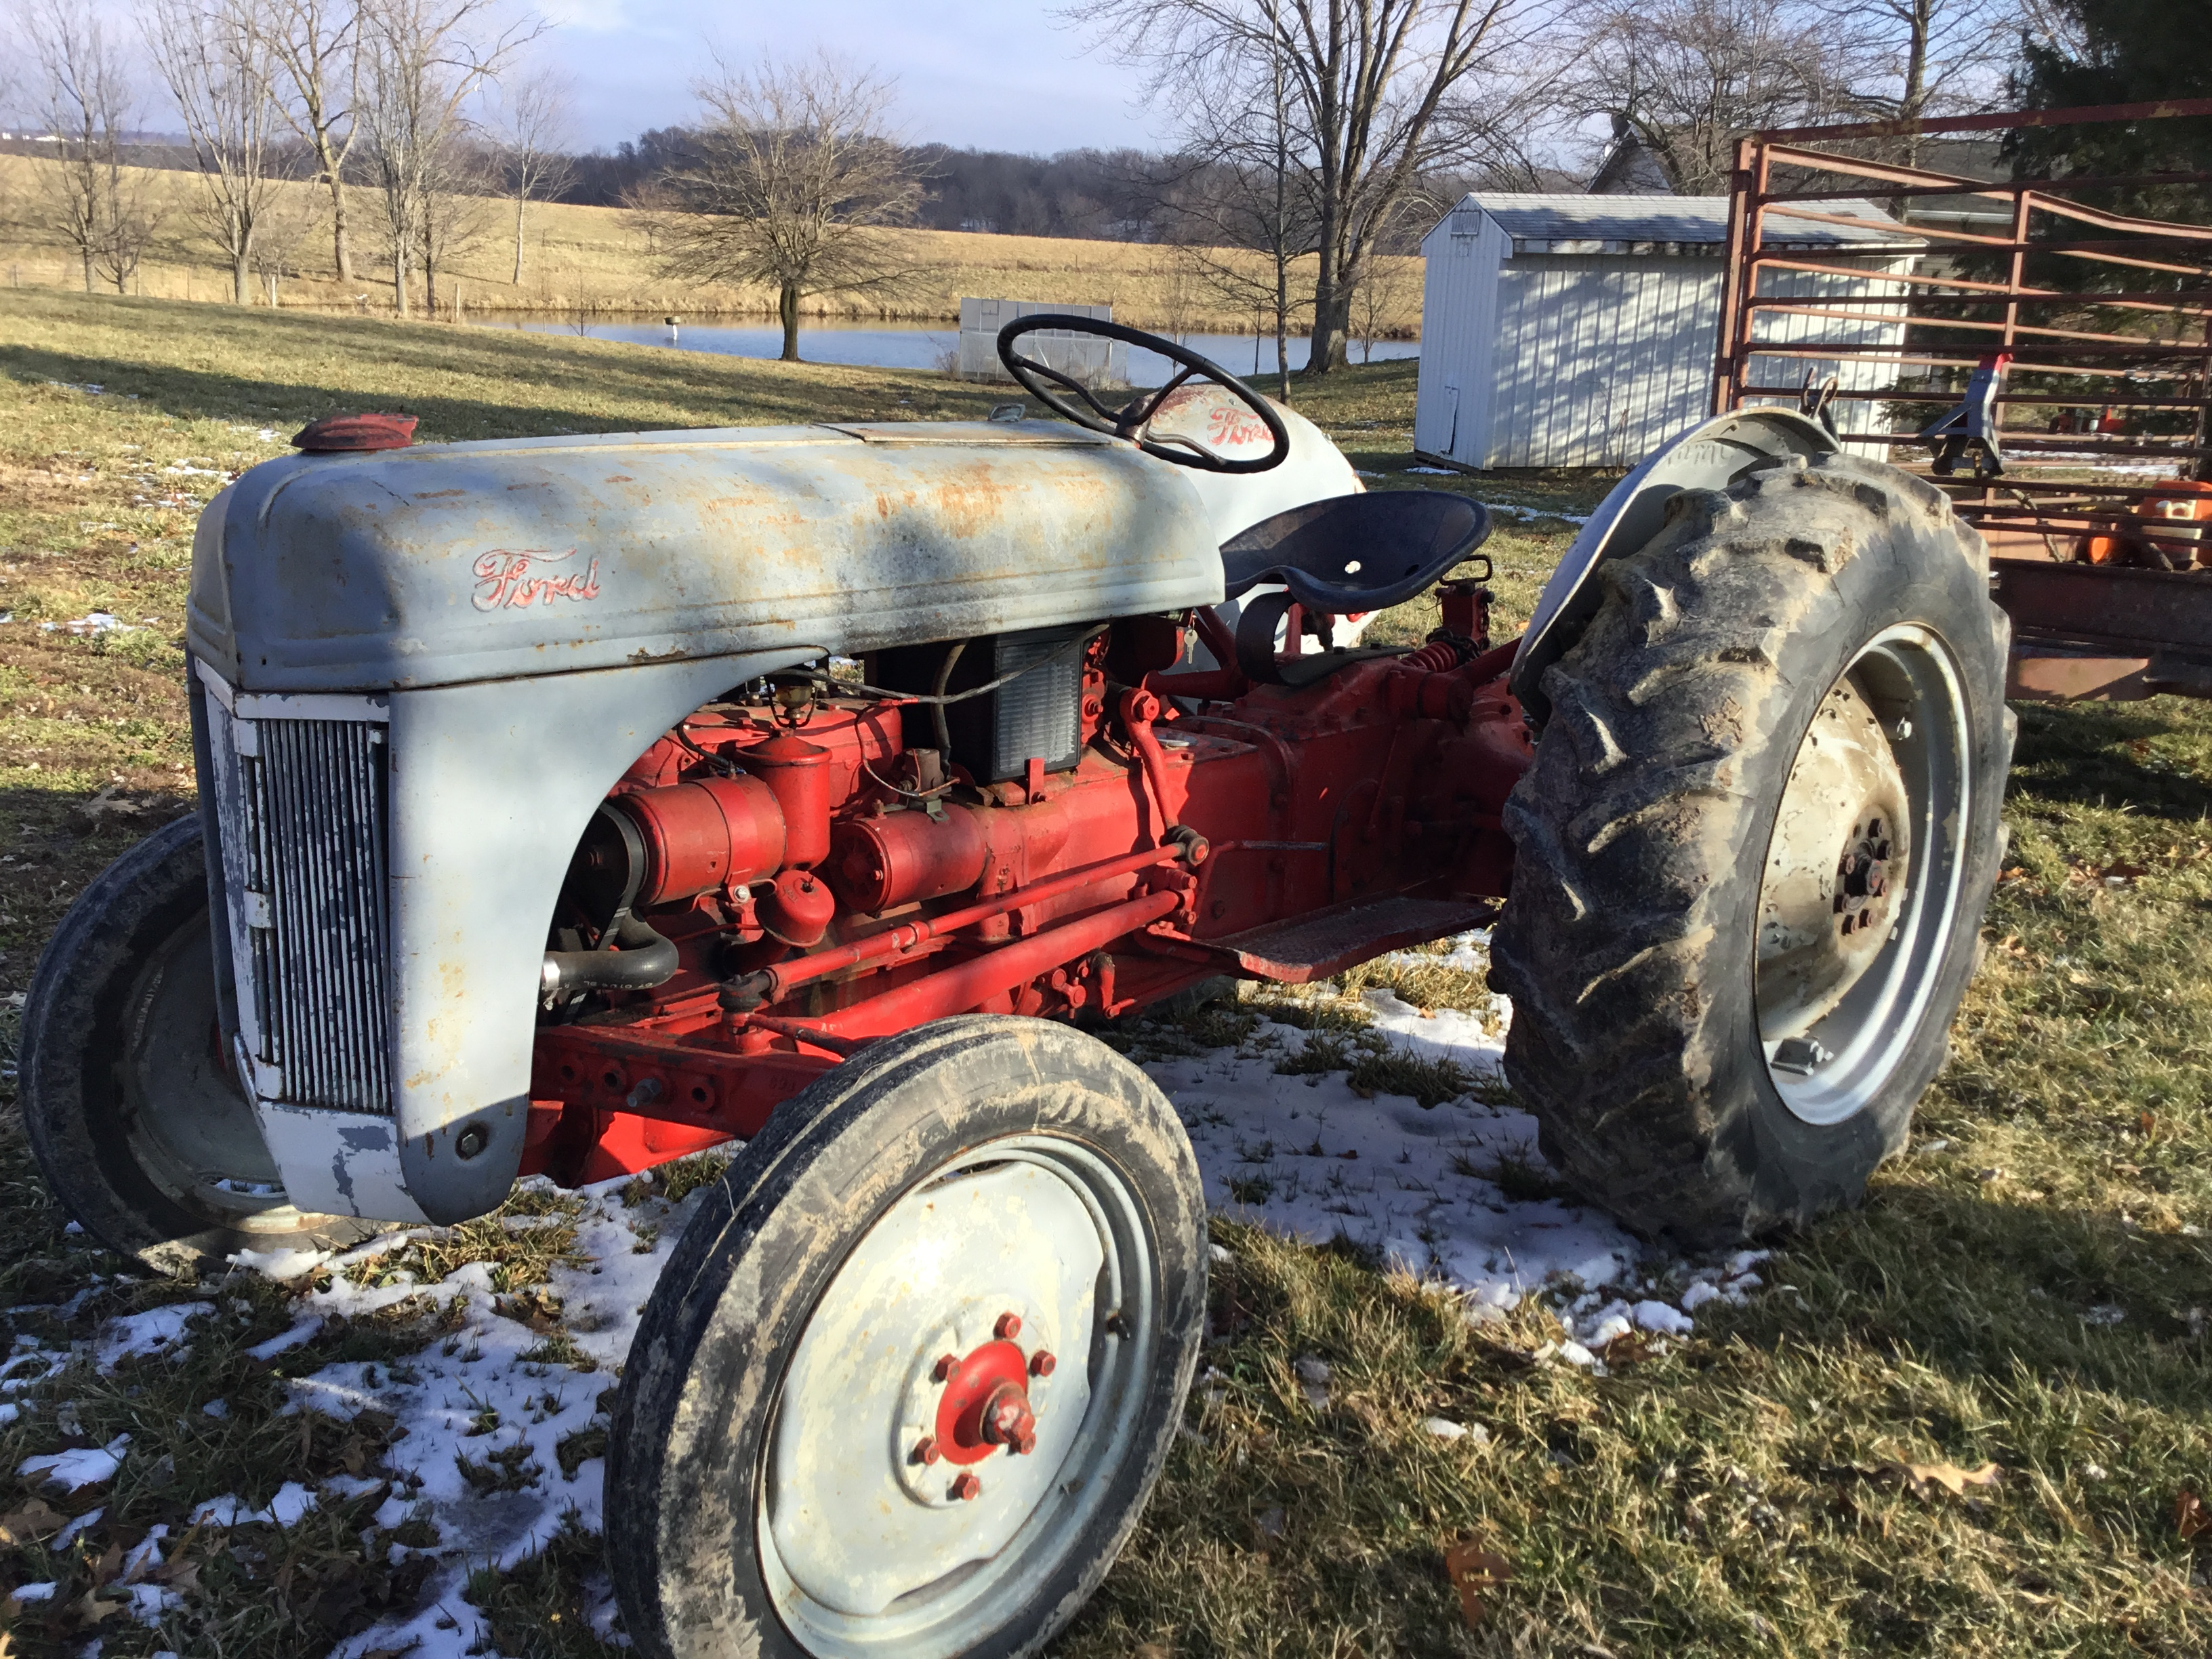 1951 8N Ford Tractor - Image 2 of 6